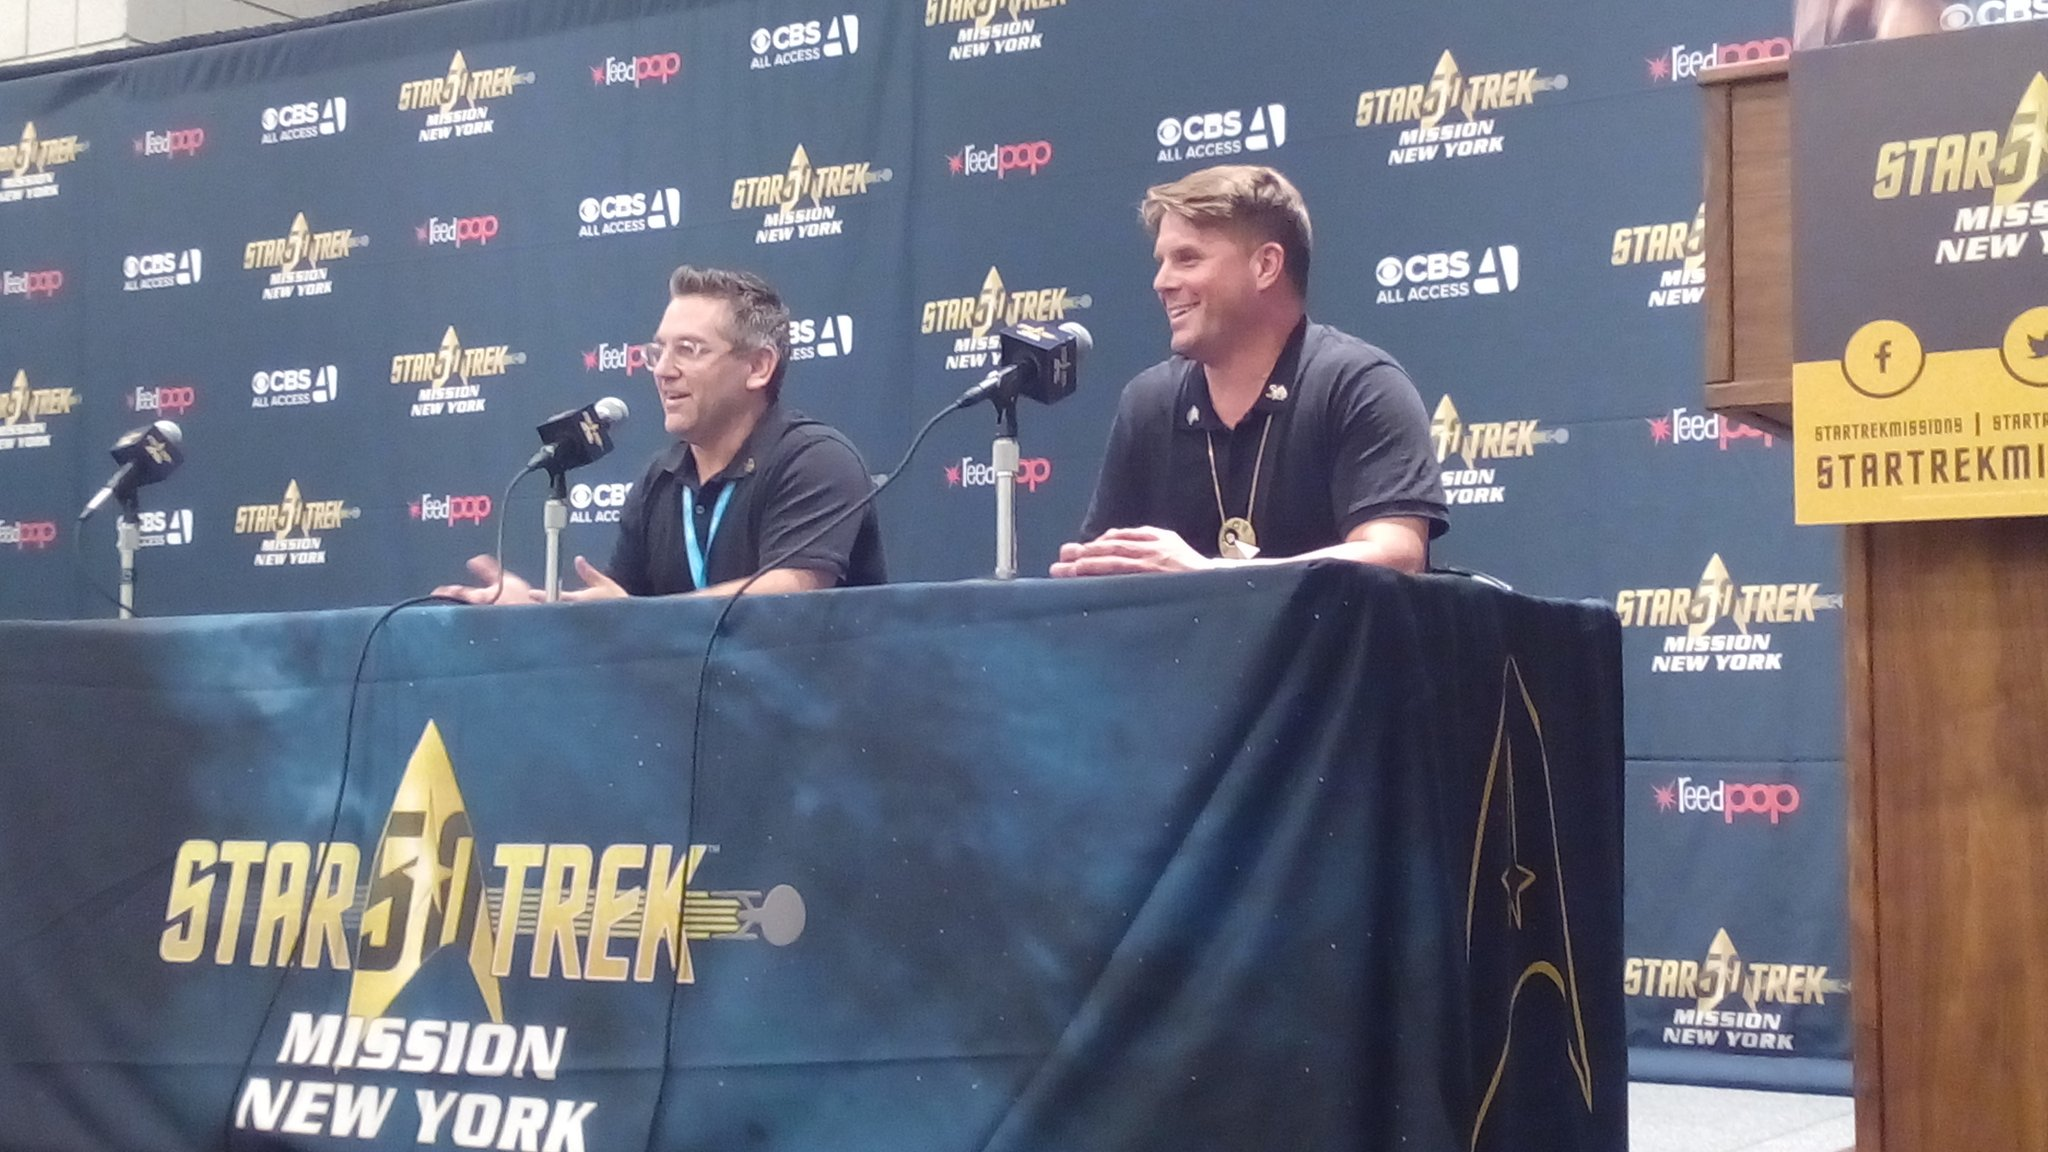 """Does anyone know what film is?"" So its come to that, eh? #StarTrekNY https://t.co/NabFSweJsP"